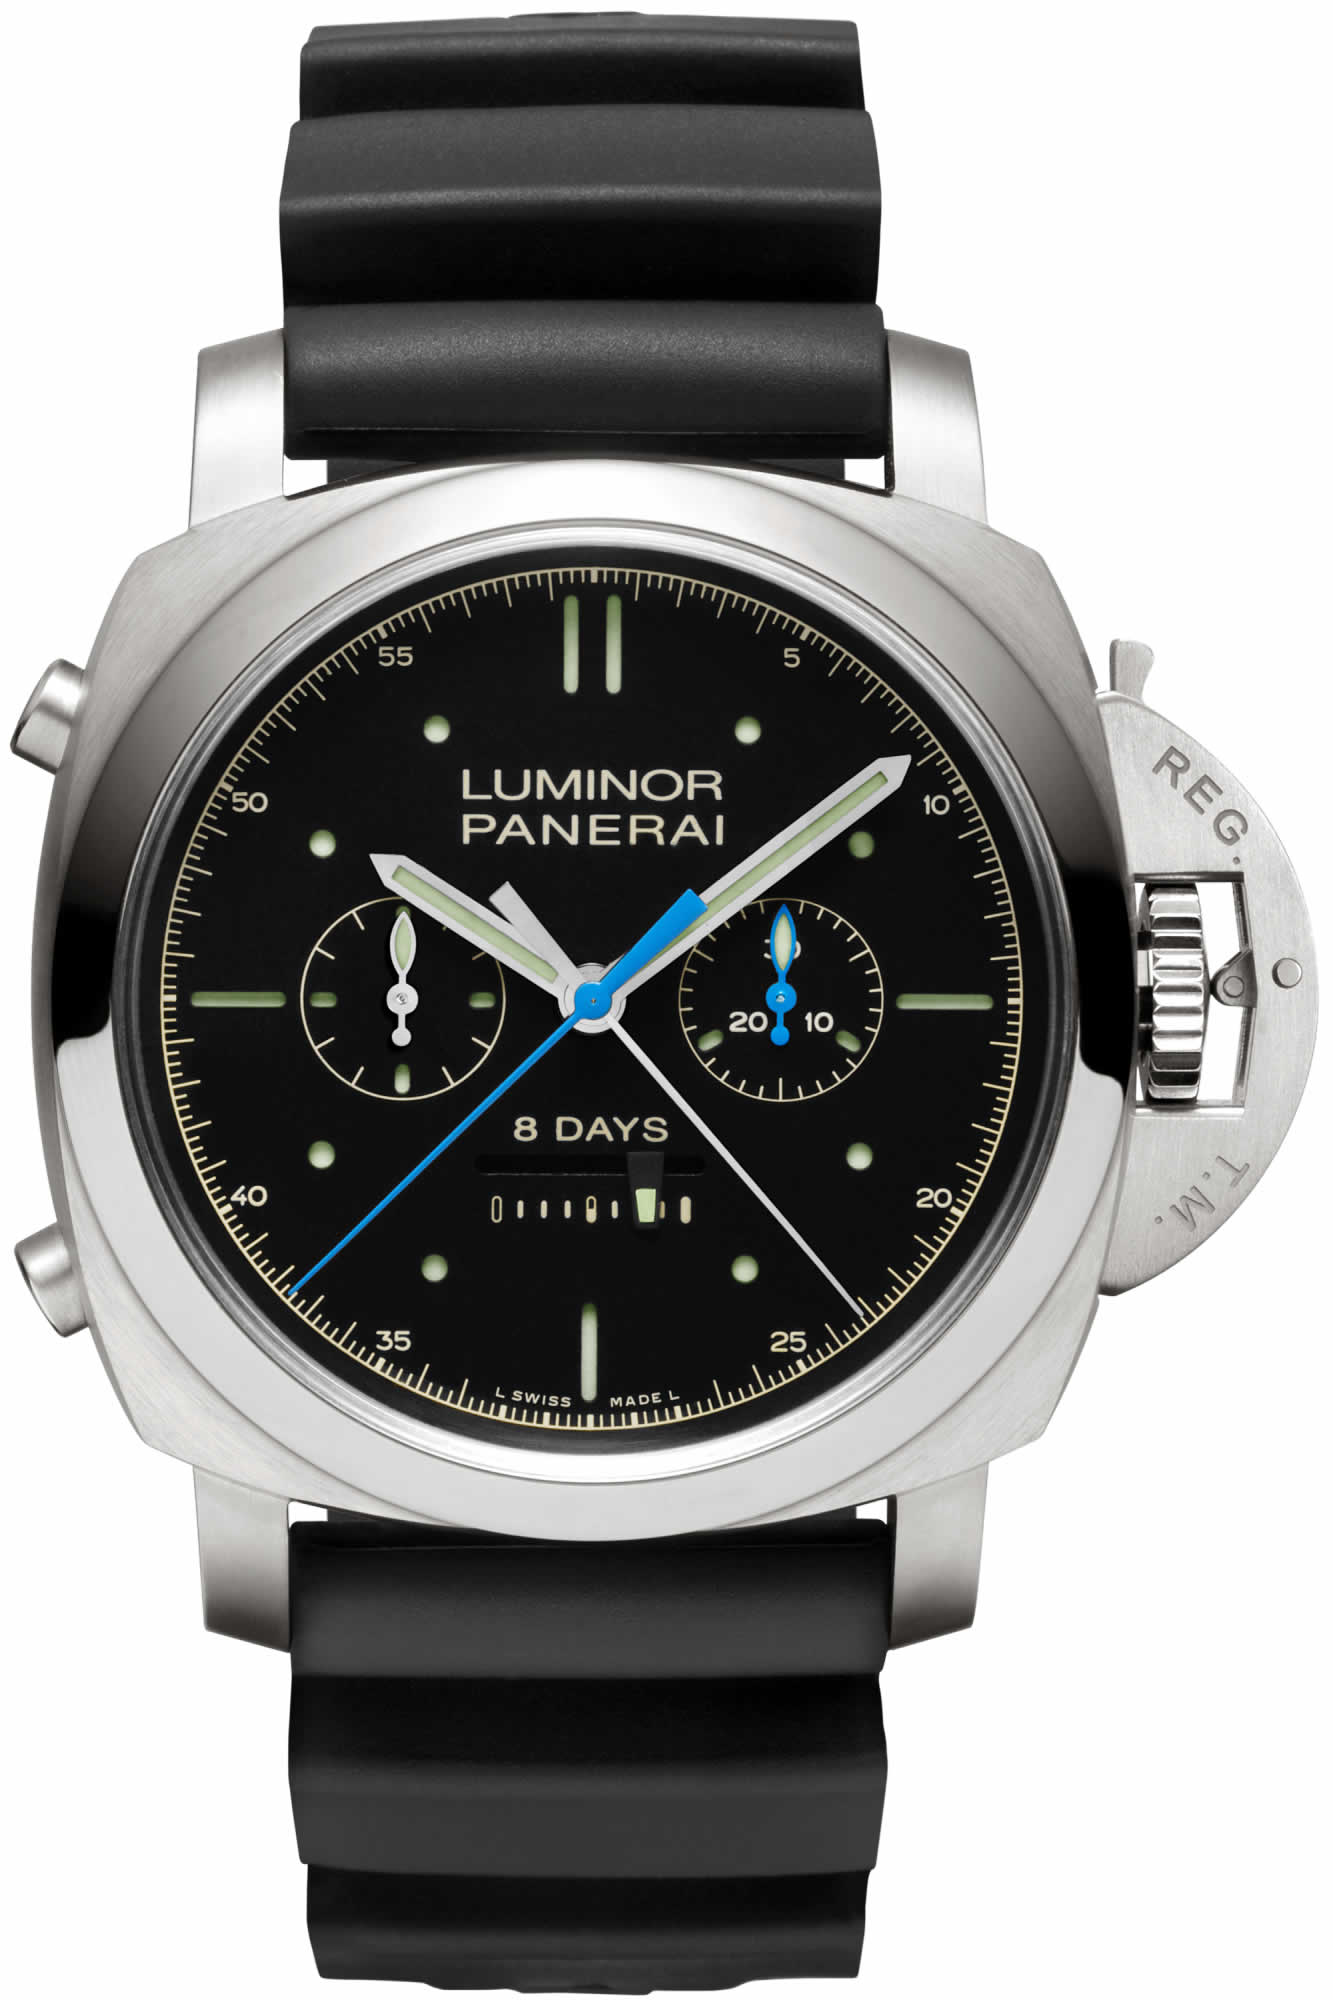 panerai-luminor-PAM00530-split-second.jpg